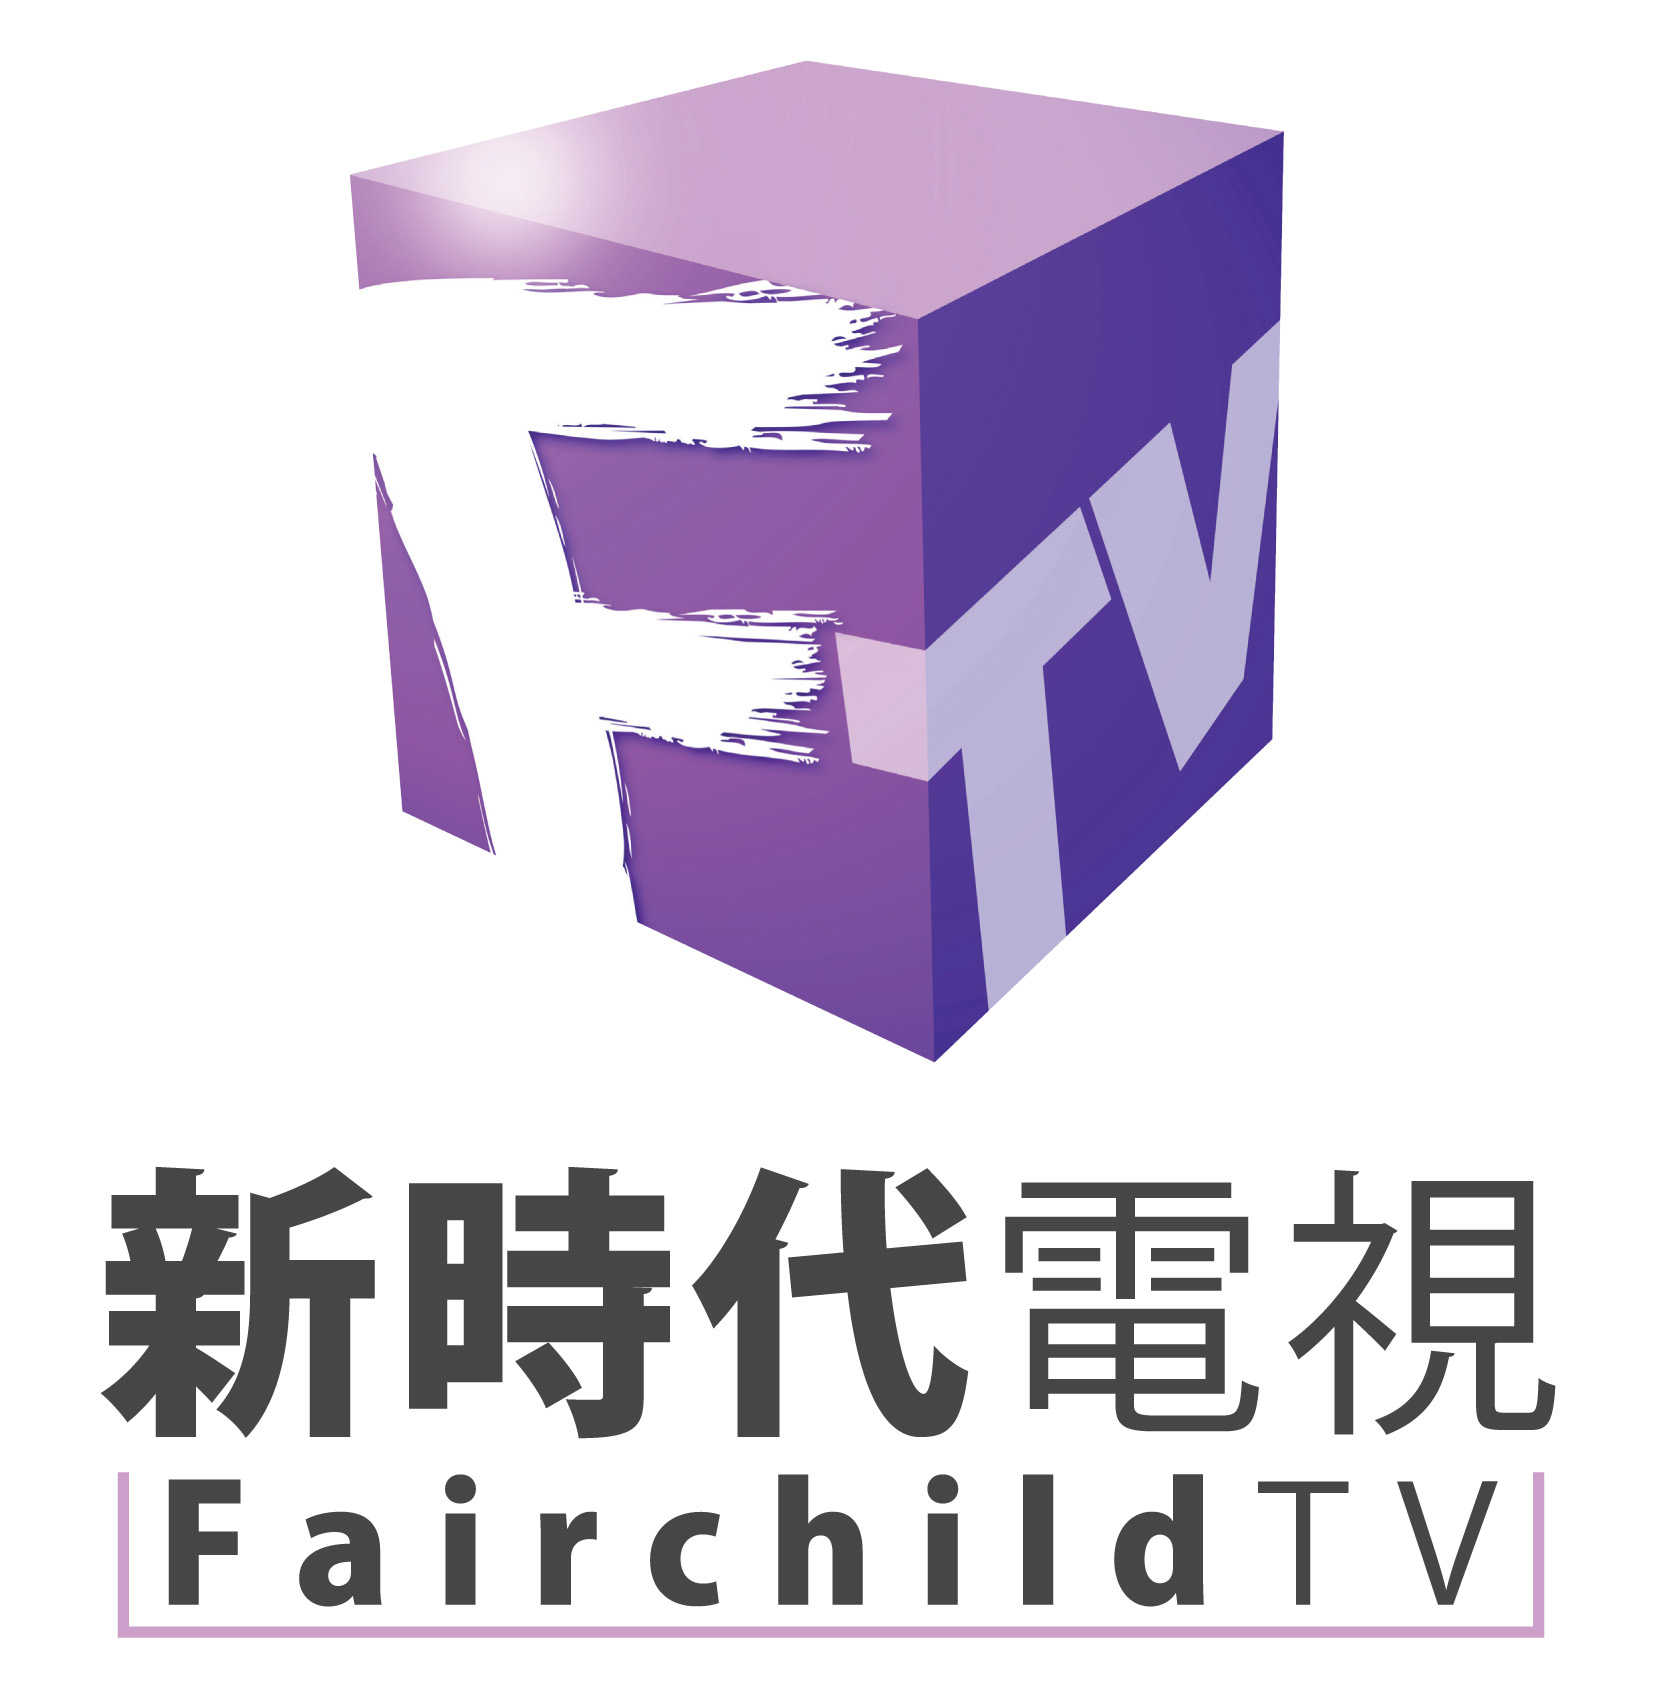 fairchildtv